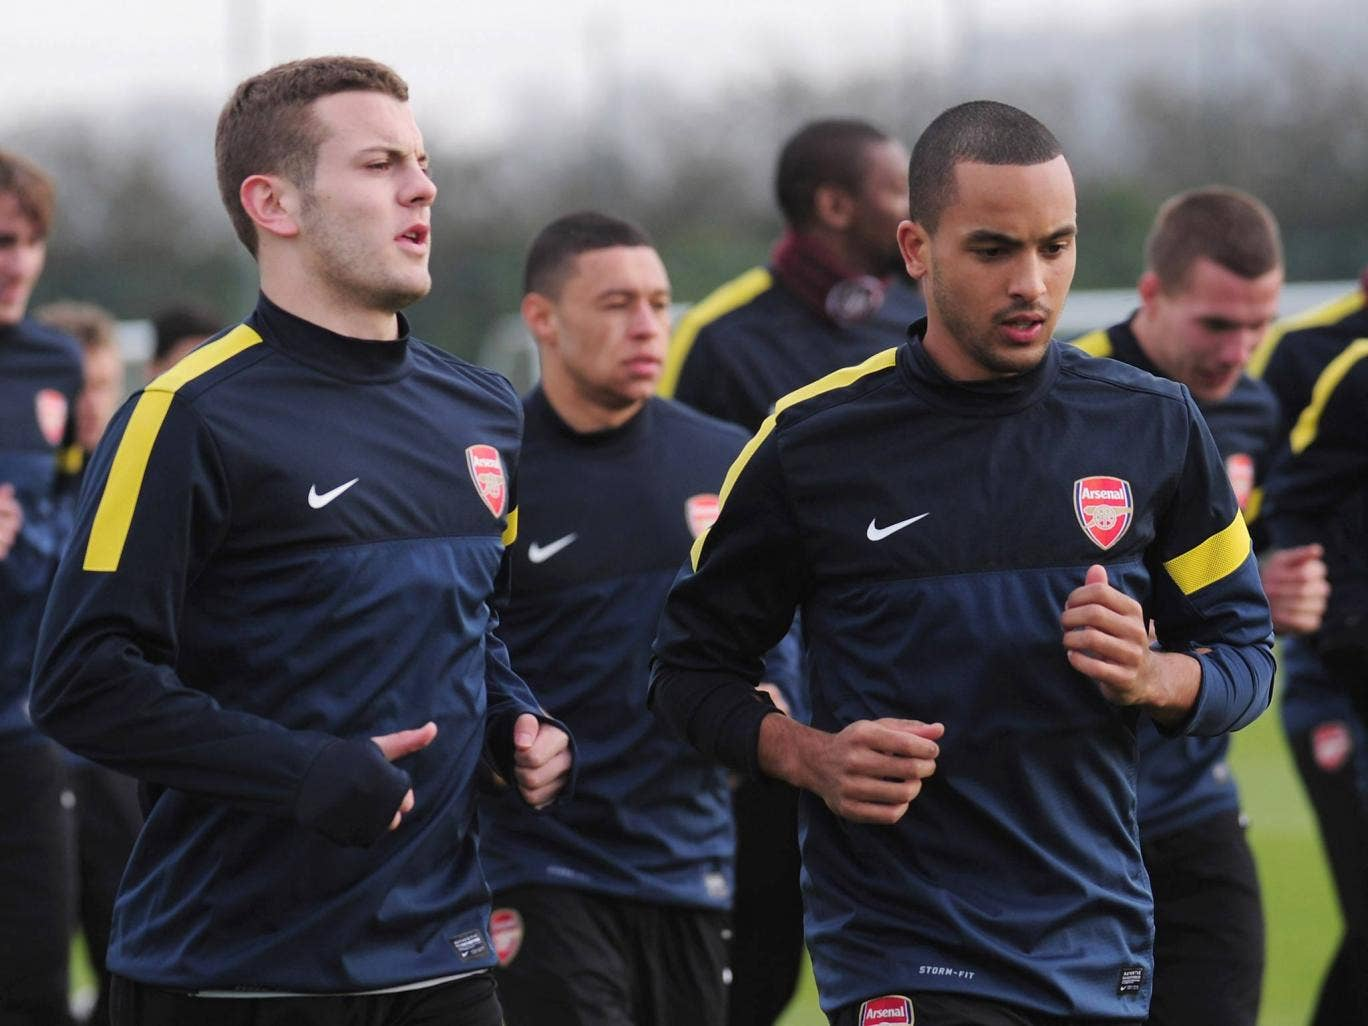 Jack Wilshere trains alongside Theo Walcott